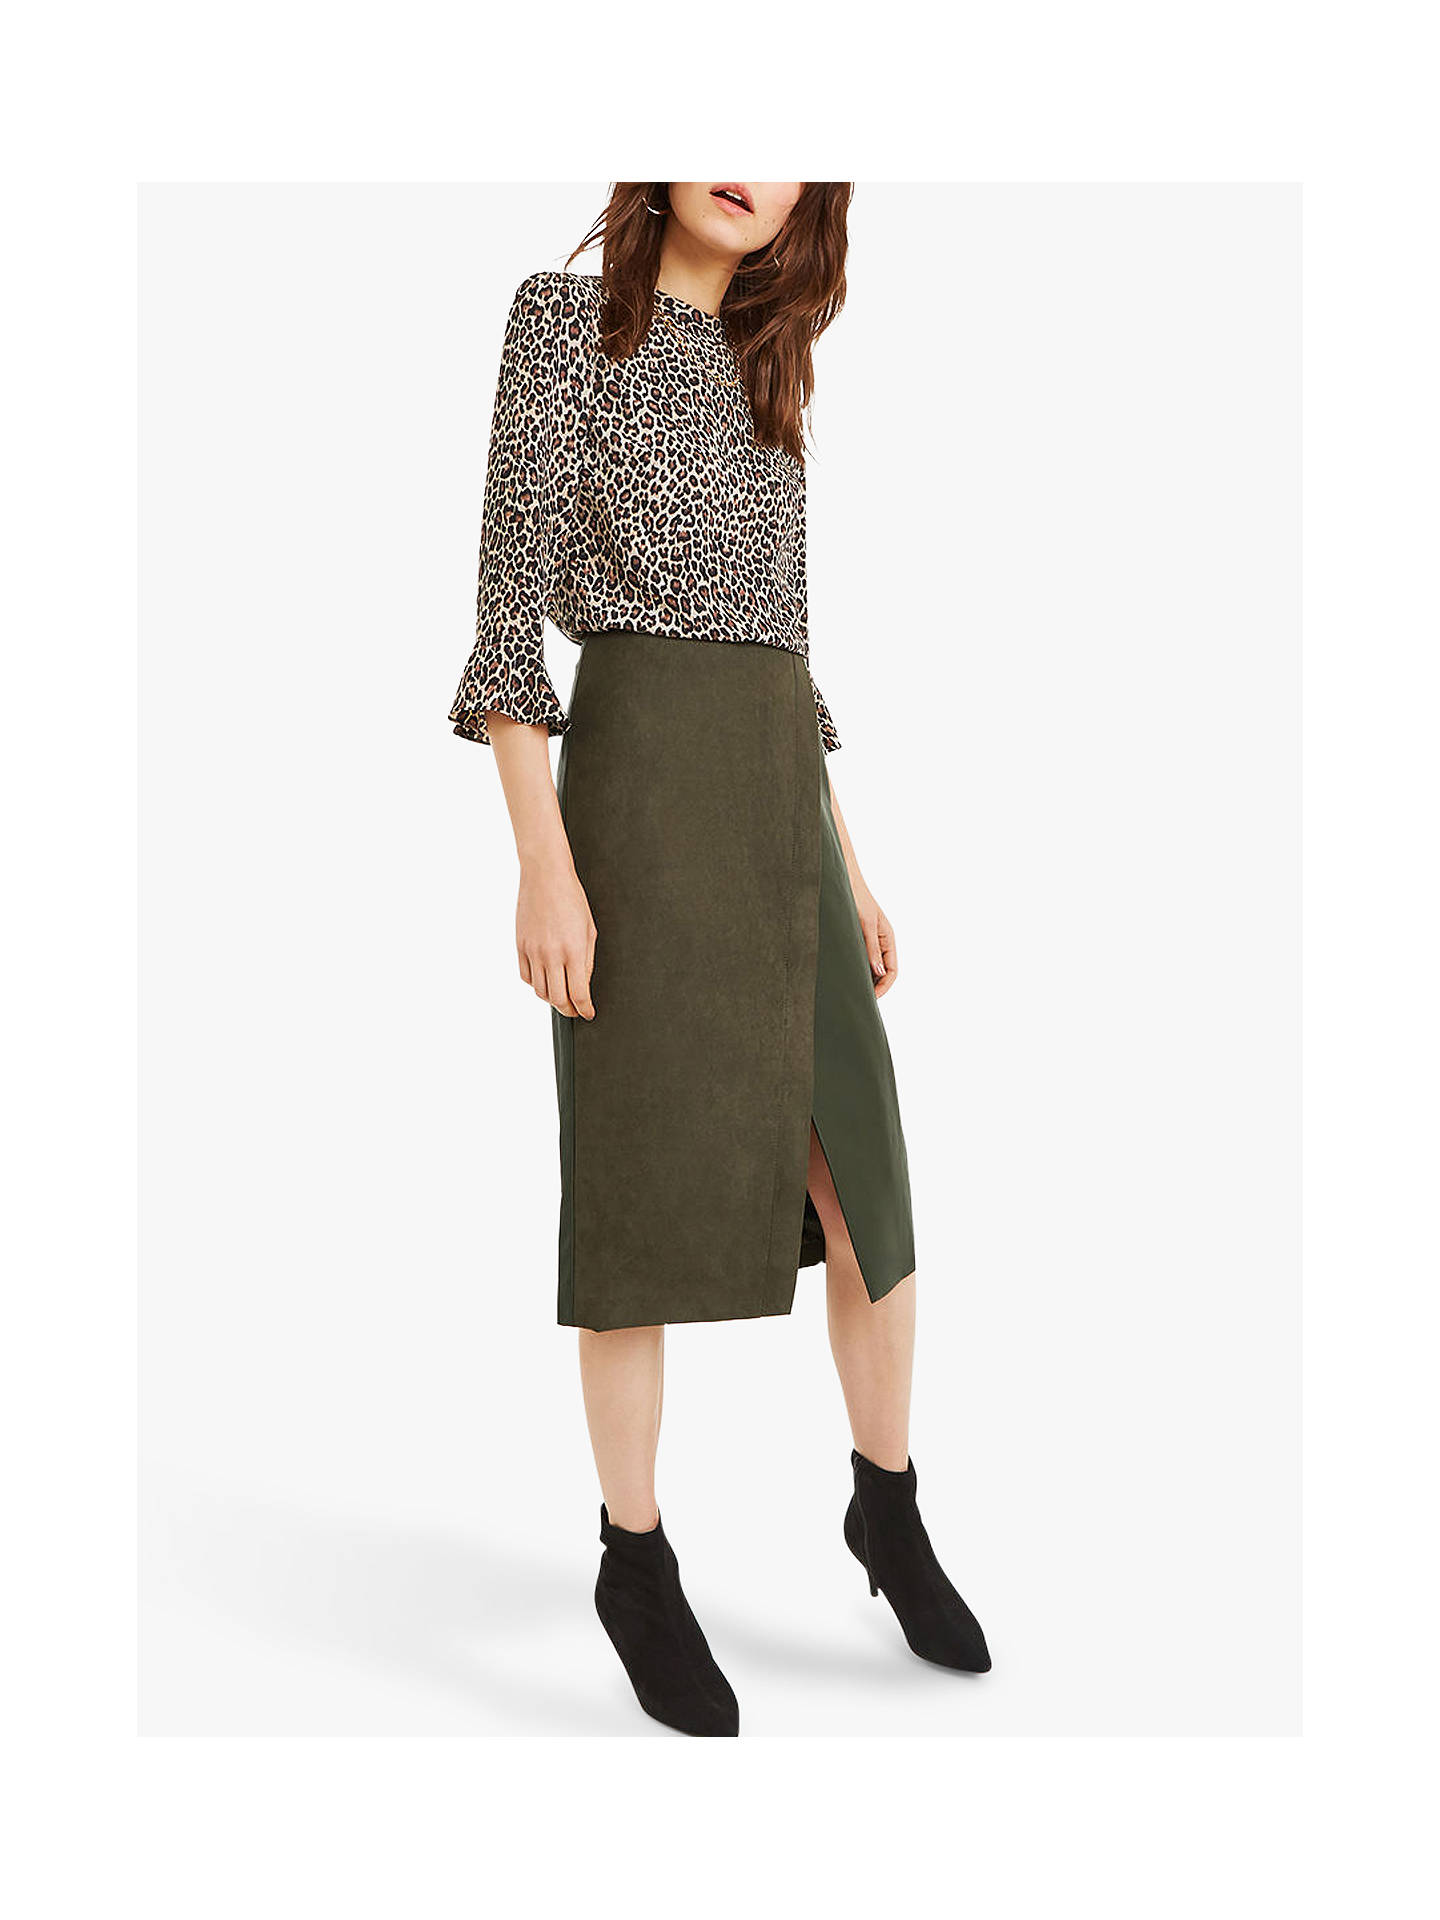 9a9358e124ef Buy Oasis Faux Suede Asymmetric Midi Skirt, Khaki, 10 Online at  johnlewis.com ...